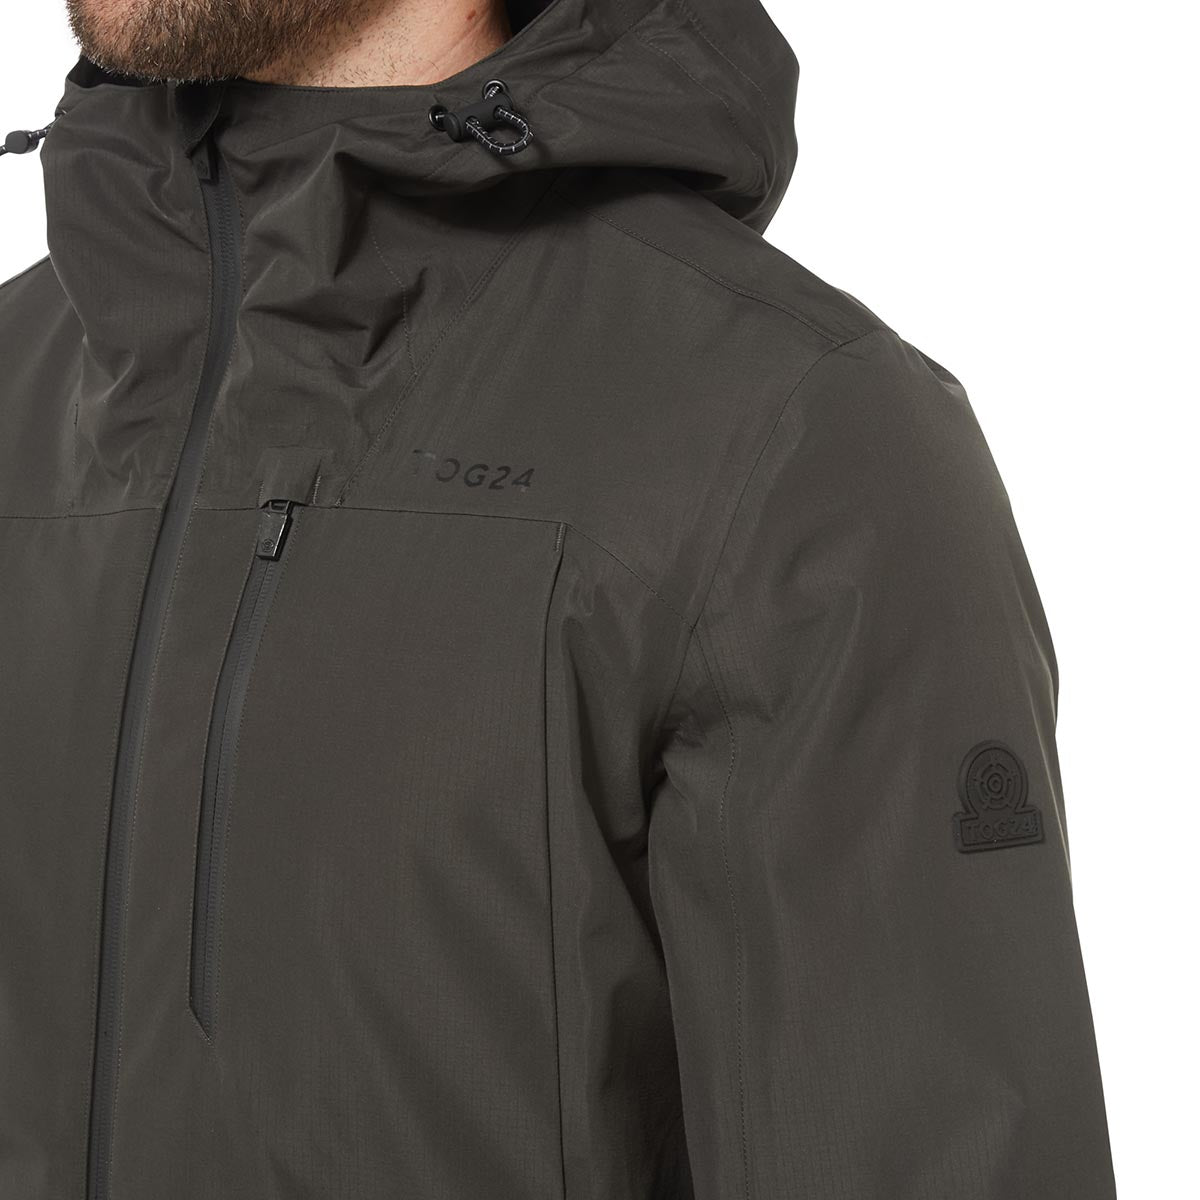 Mcintyre Mens Performance Waterproof Jacket - Charcoal image 4